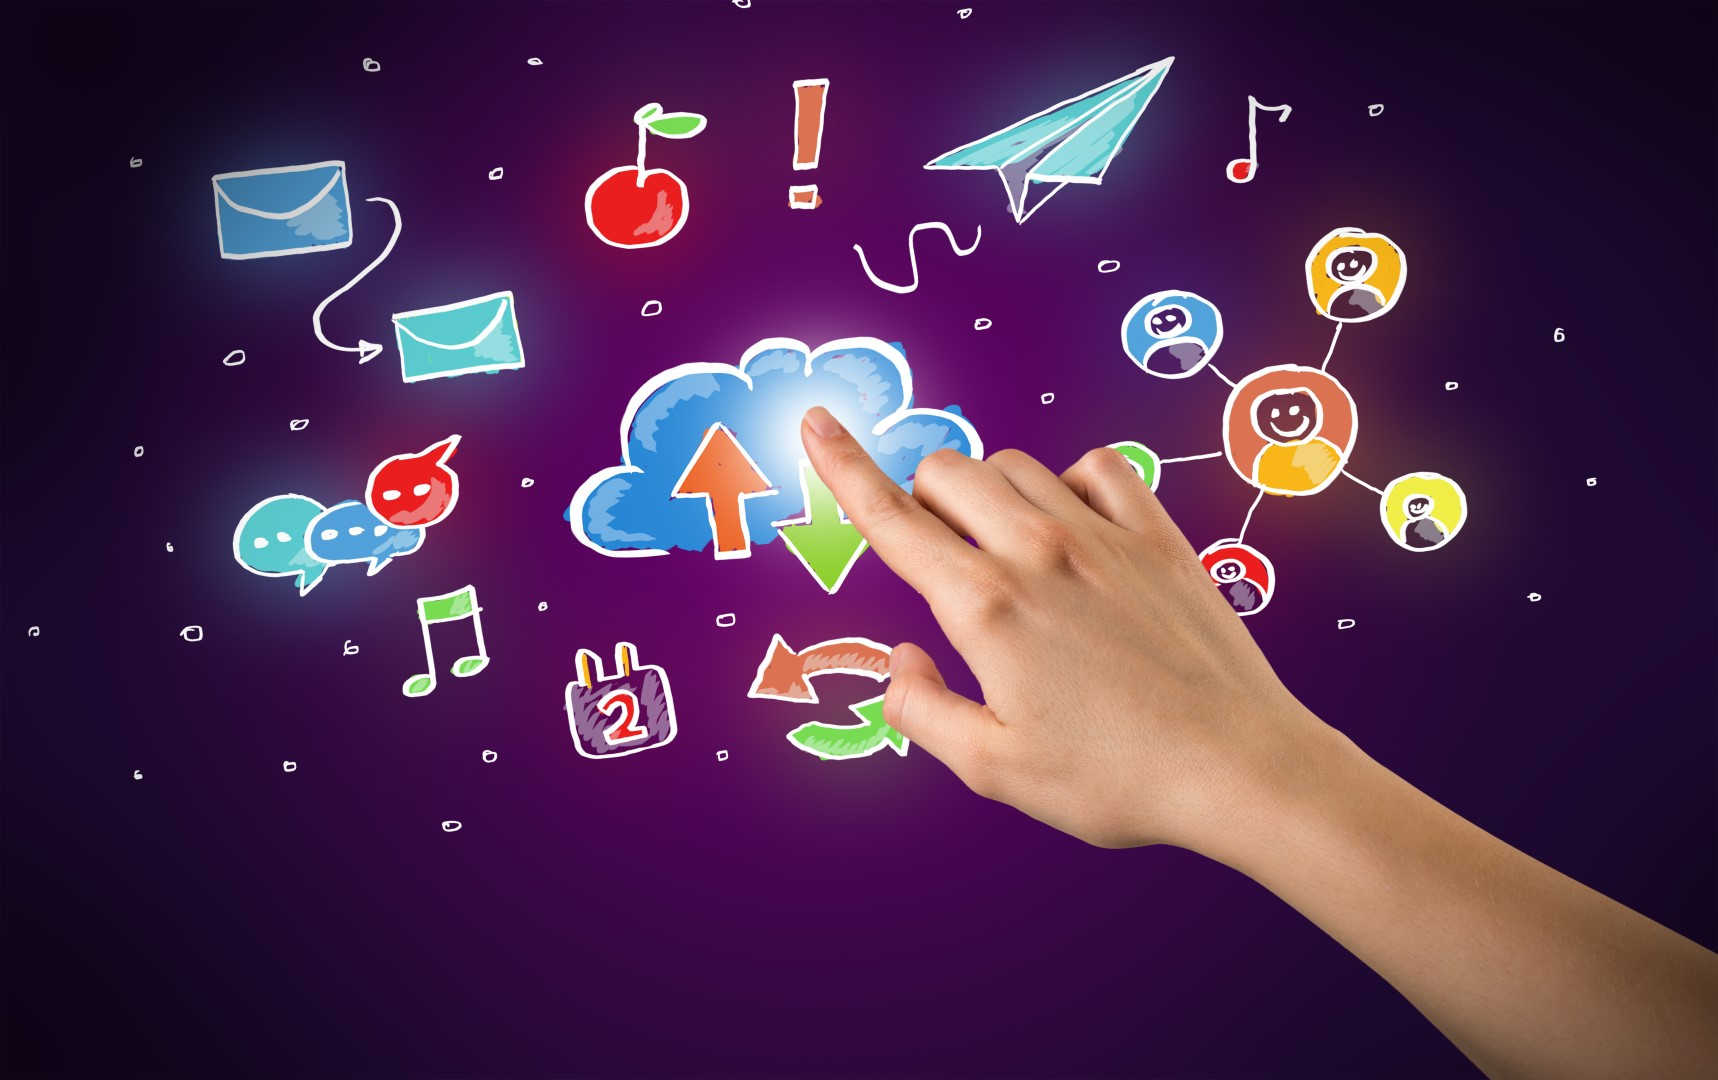 Salesforce IoT Cloud promises to create meaning from M2M talk